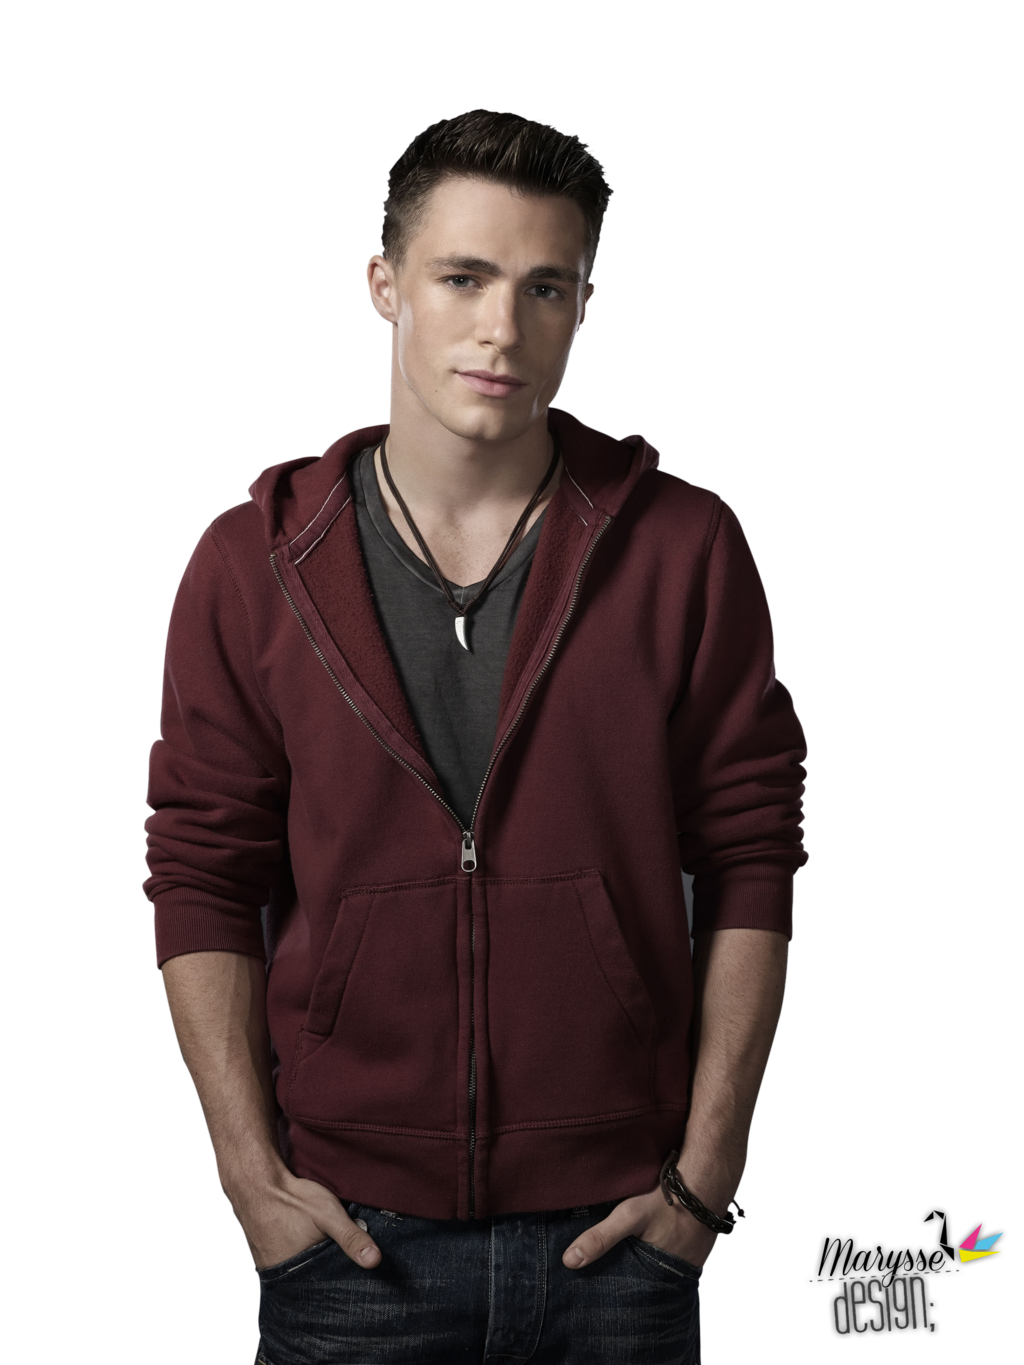 Colton Haynes Png Image By Marysse93 D6pkh78 image #1969